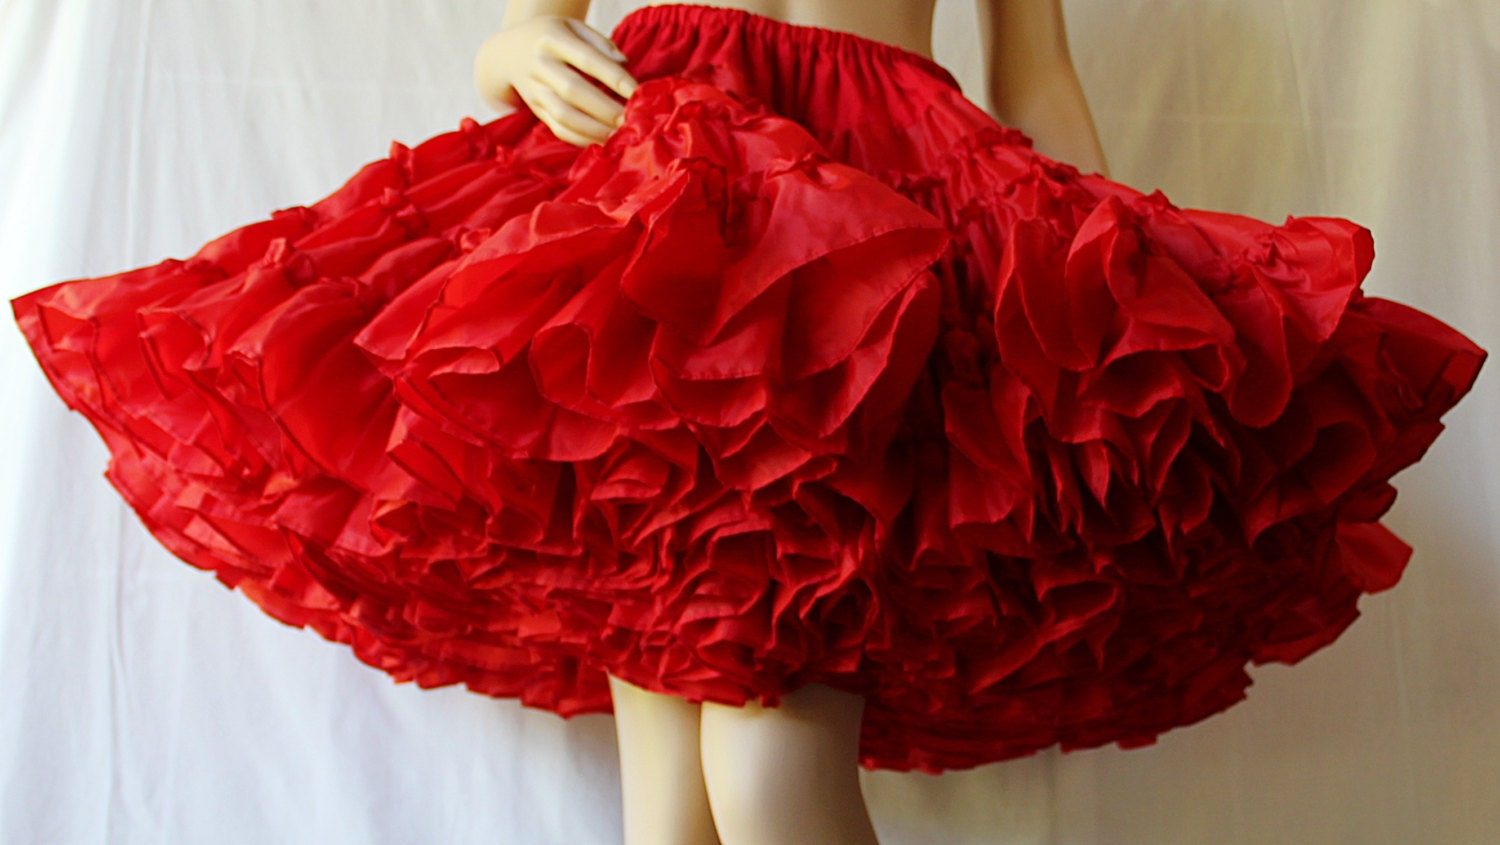 Shemale and red petticoat